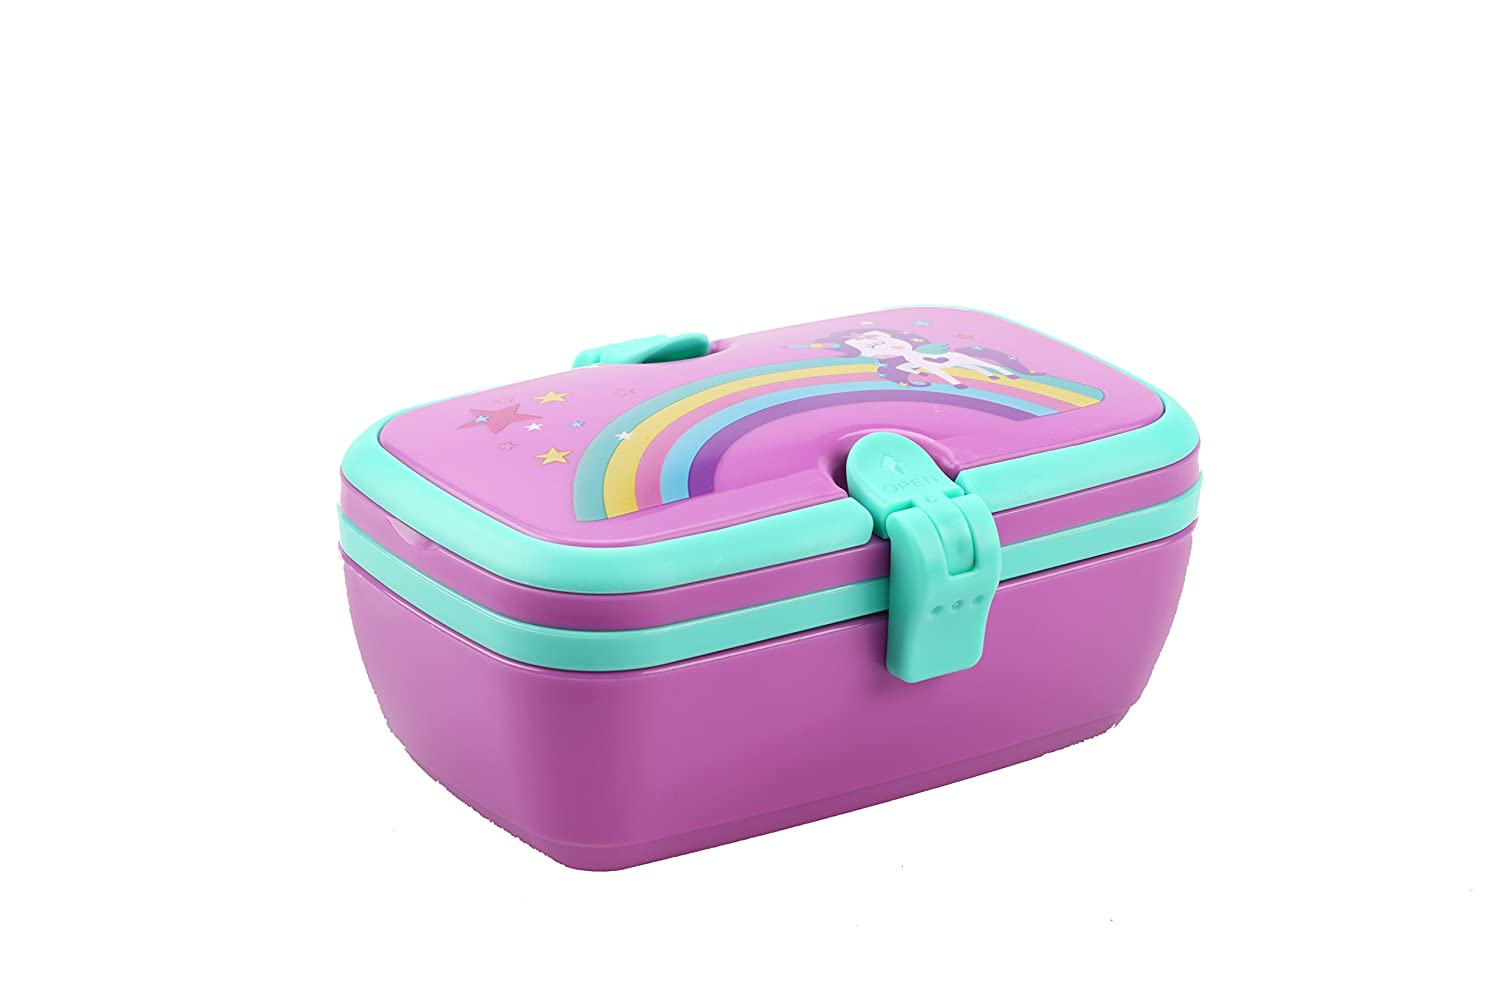 Smily Kiddos Fantasy Lunch Box | Lunchbox for Kids | Tiffin Box for School/Picnic/Travel Purpose | Unicorn Tiffin Box (Purple)